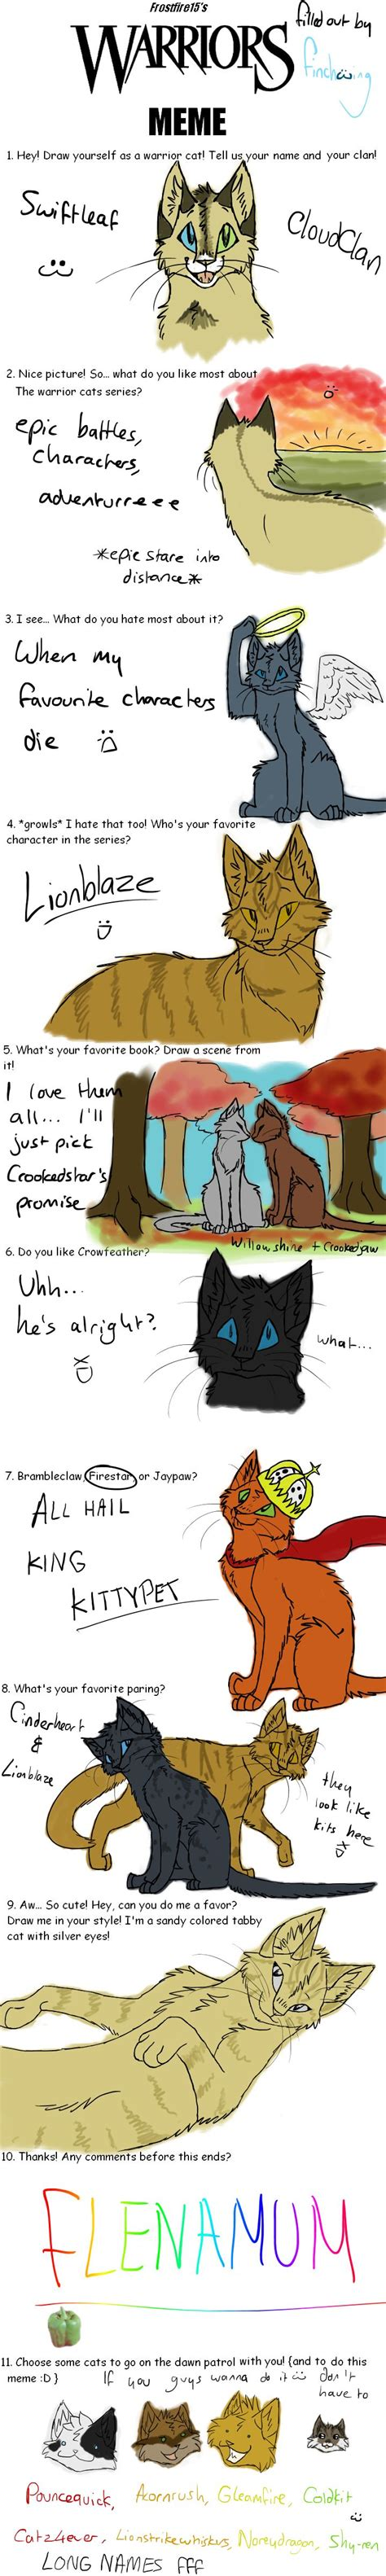 Warrior Cats Meme - pin by marley mcconahay on warriors pinterest